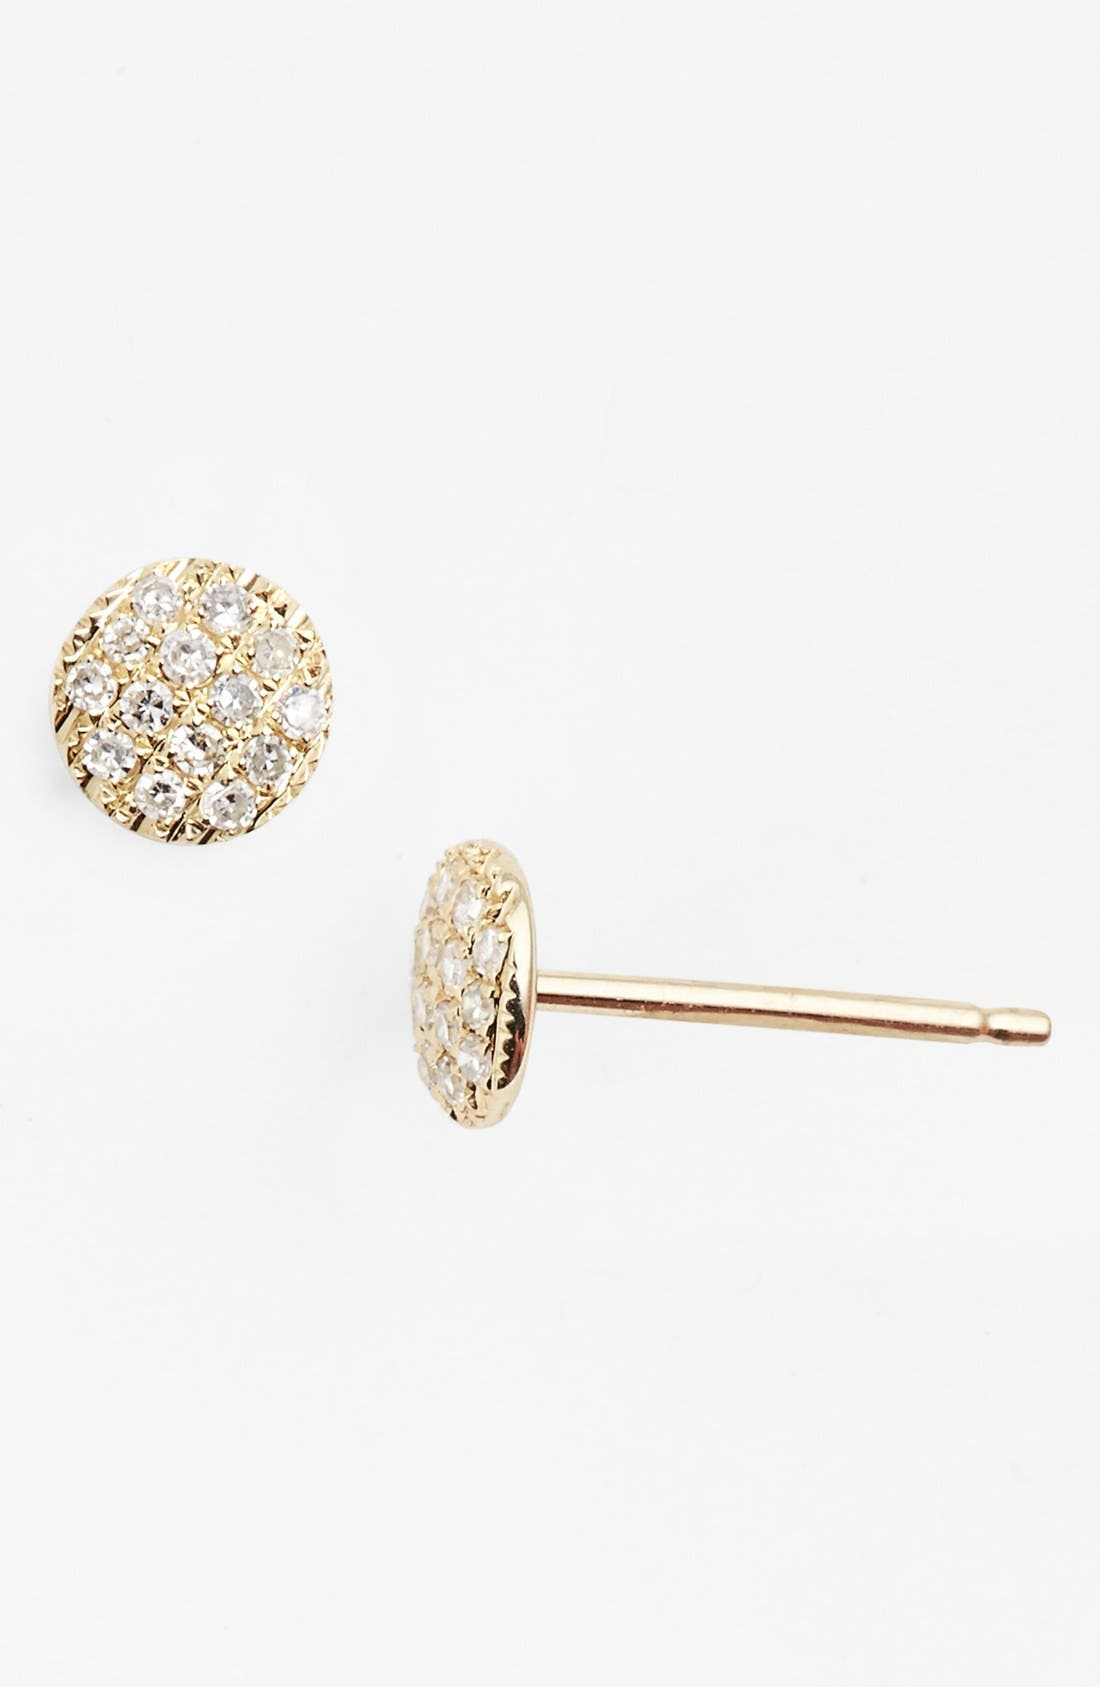 DANA REBECCA DESIGNS 'Lauren Joy' Diamond Disc Stud